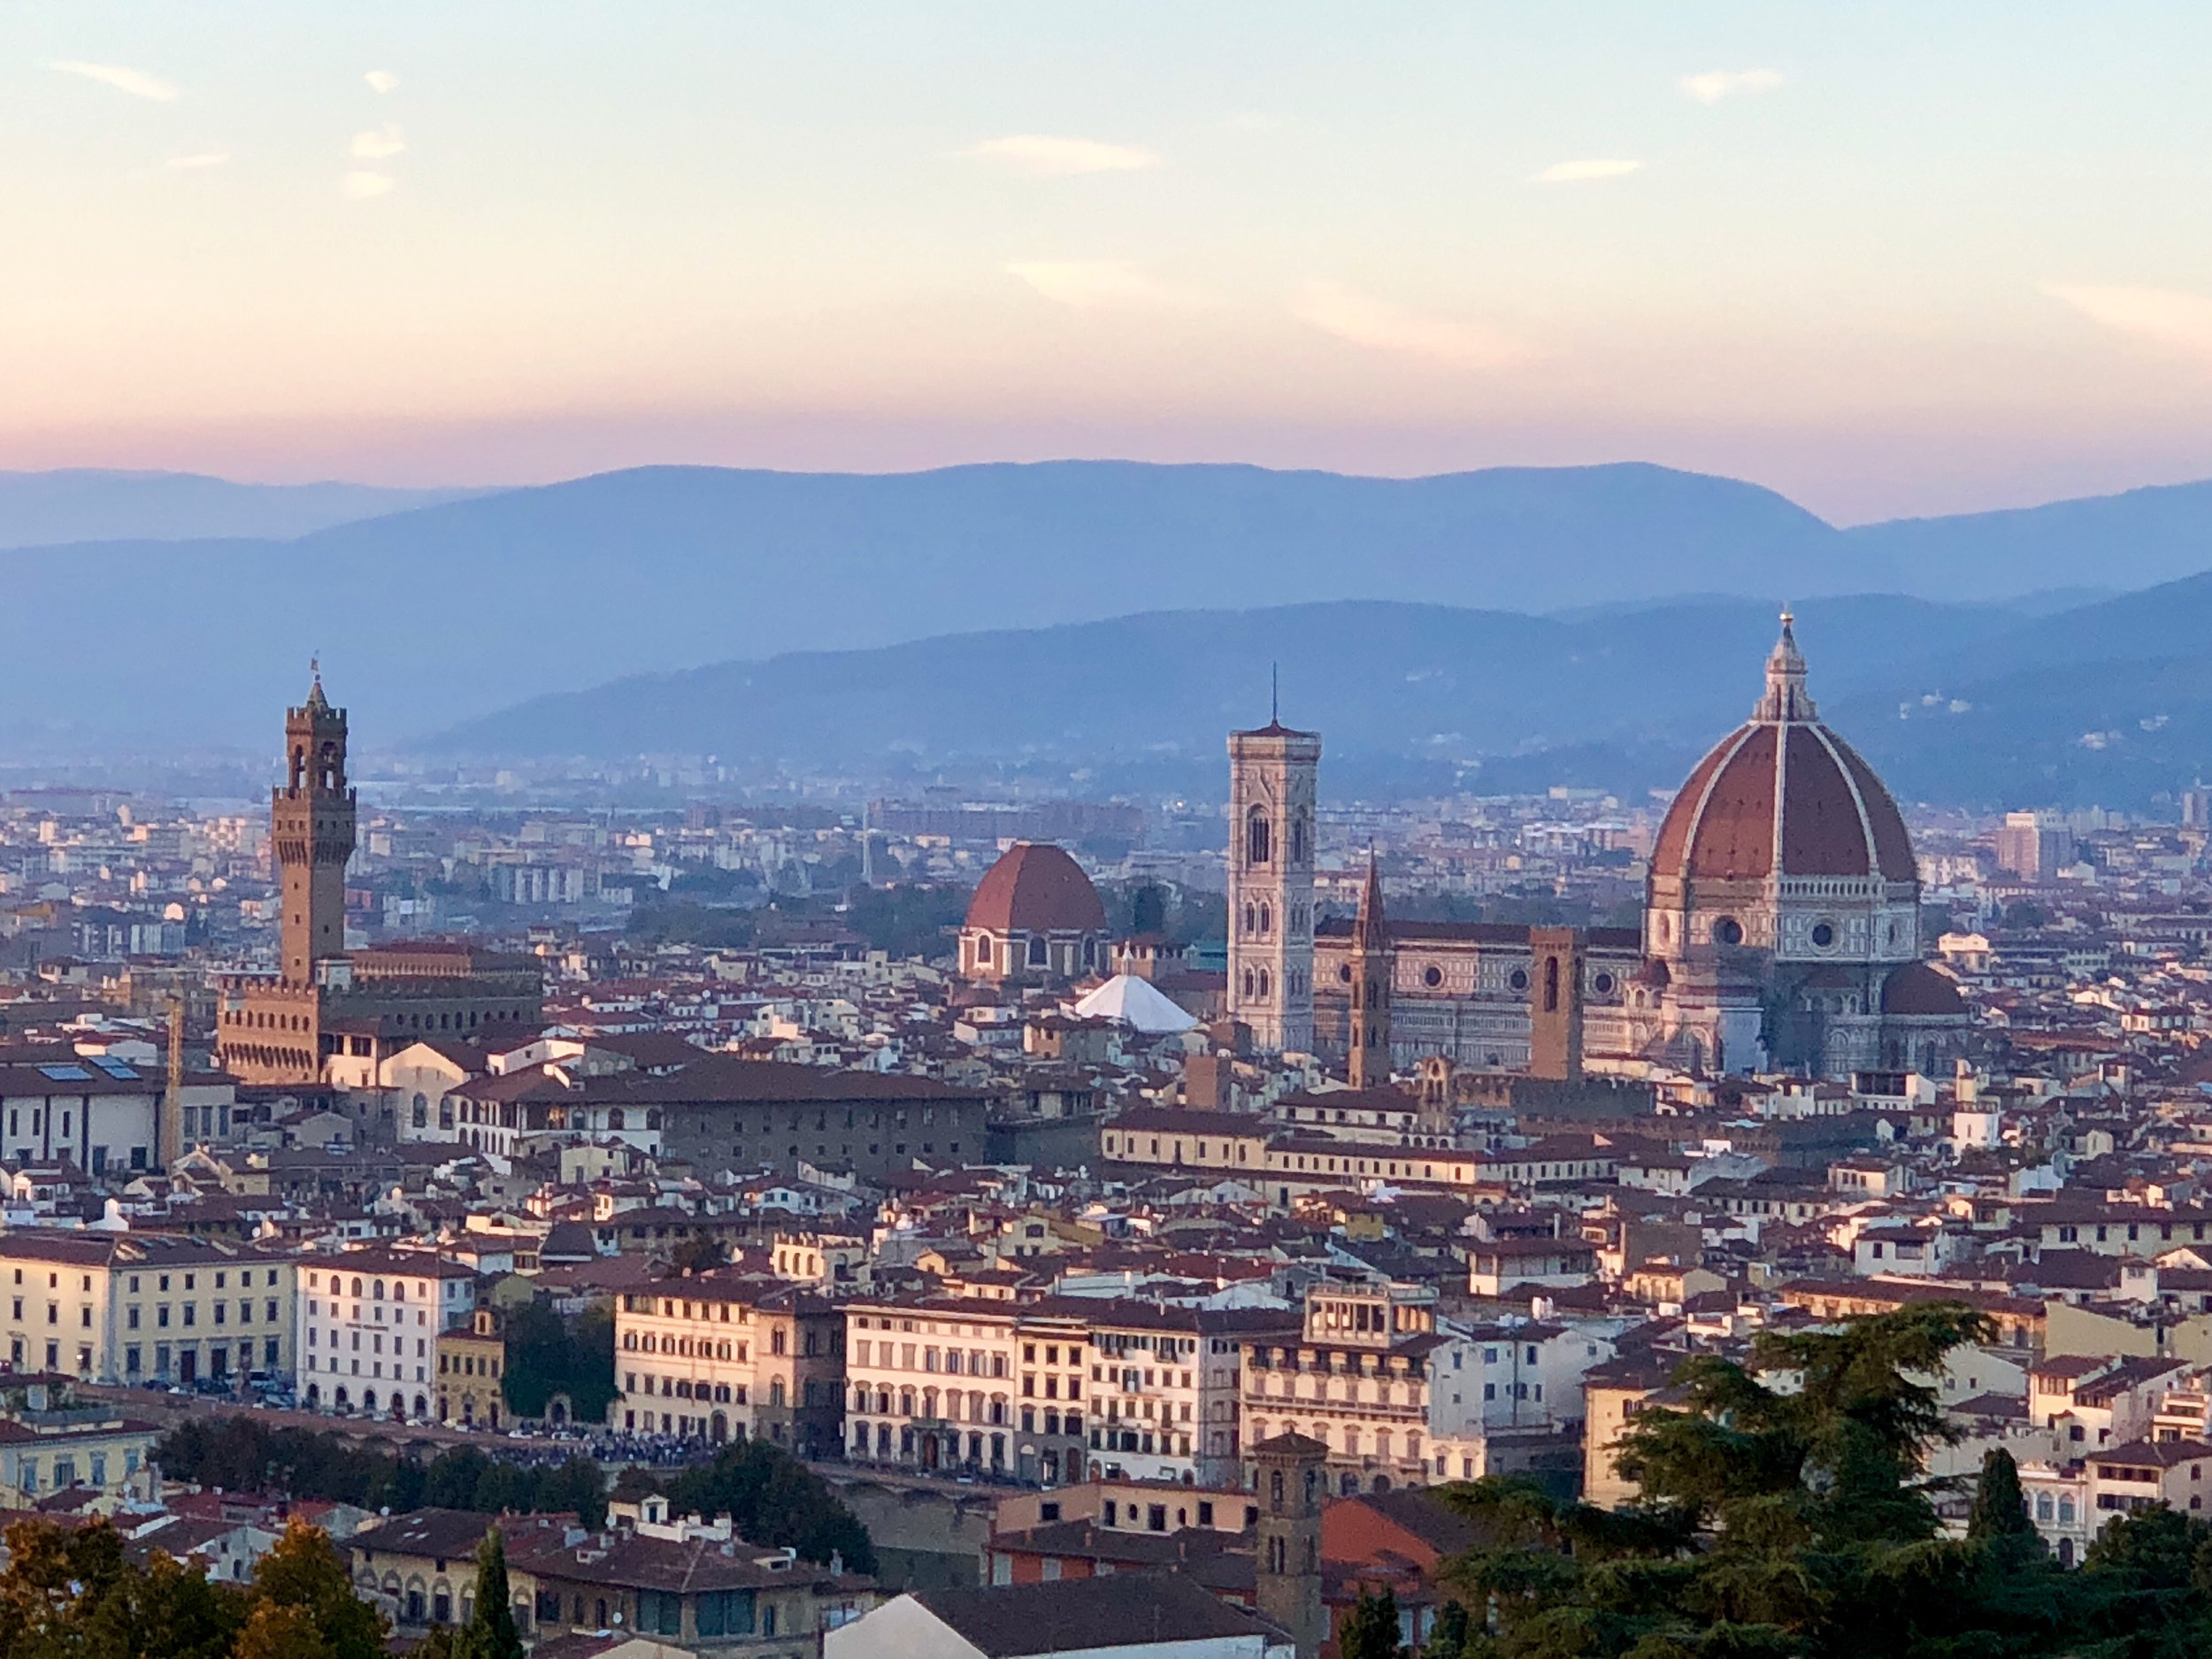 Florence, Italy October 2018 - photo by retreat guest Renee Wills